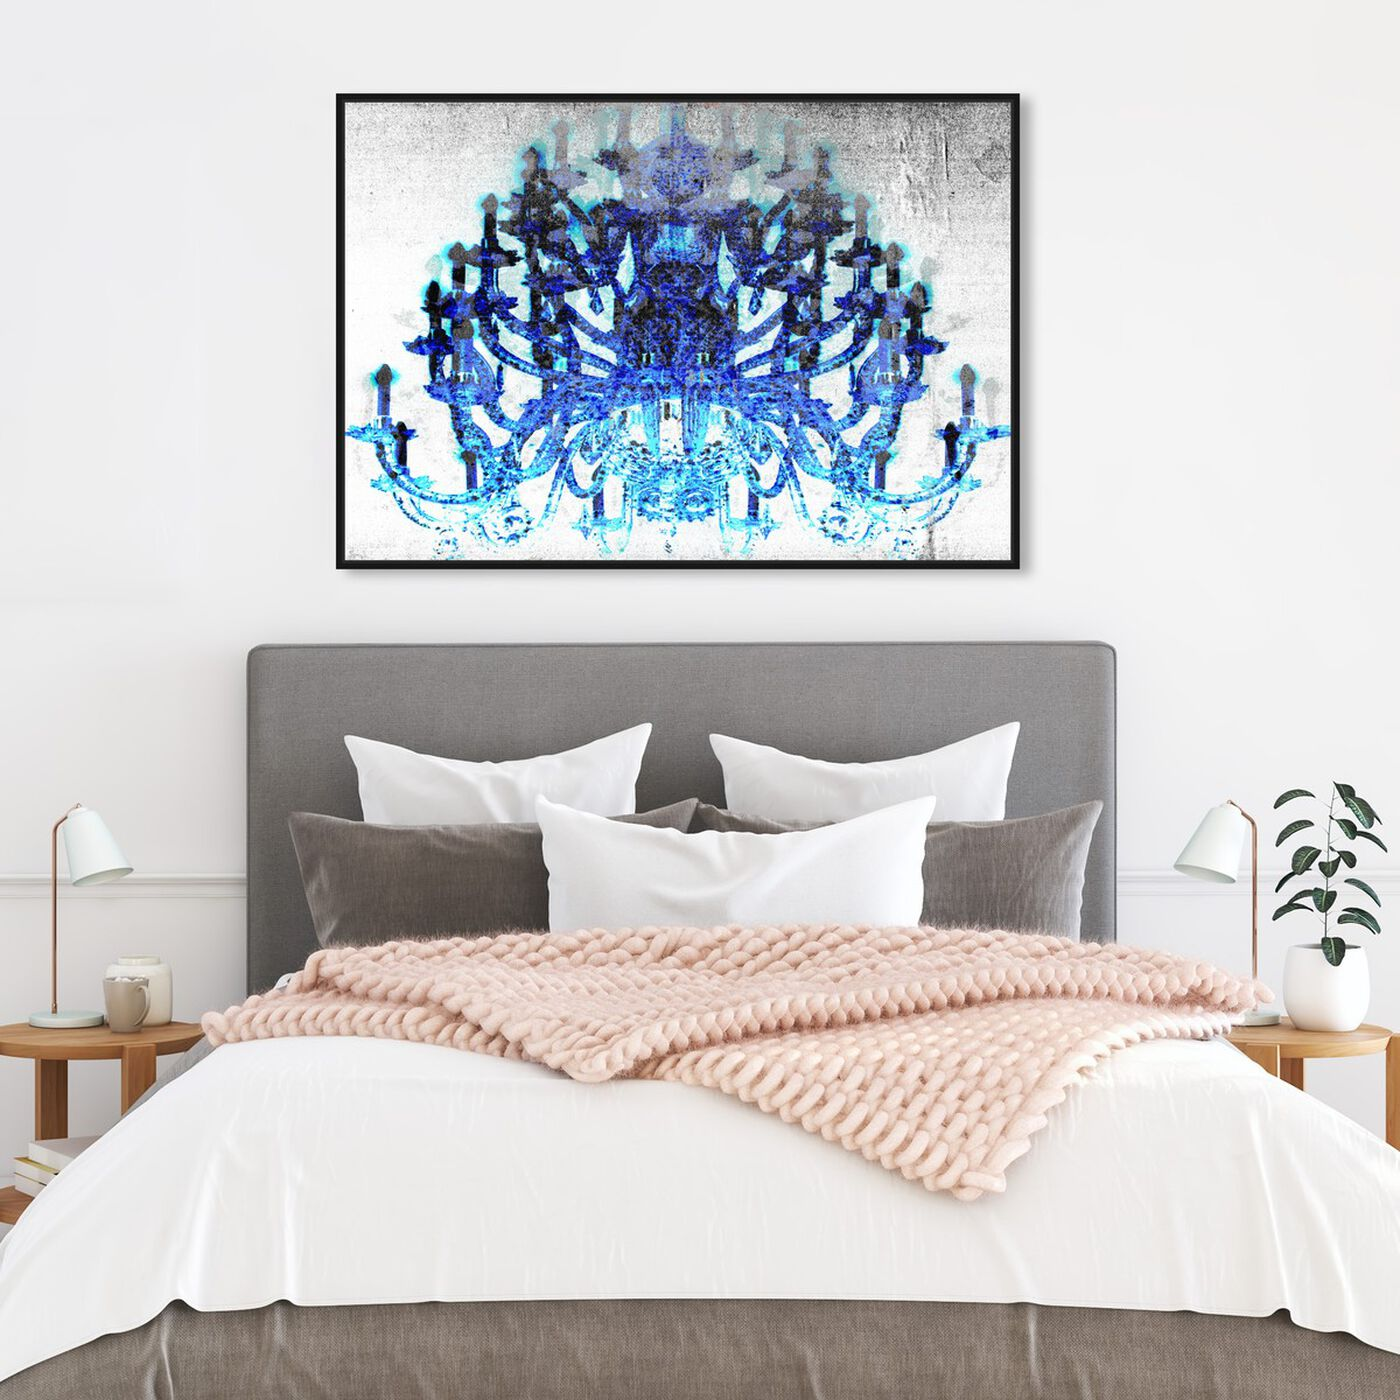 Hanging view of Land of the Living featuring fashion and glam and chandeliers art.